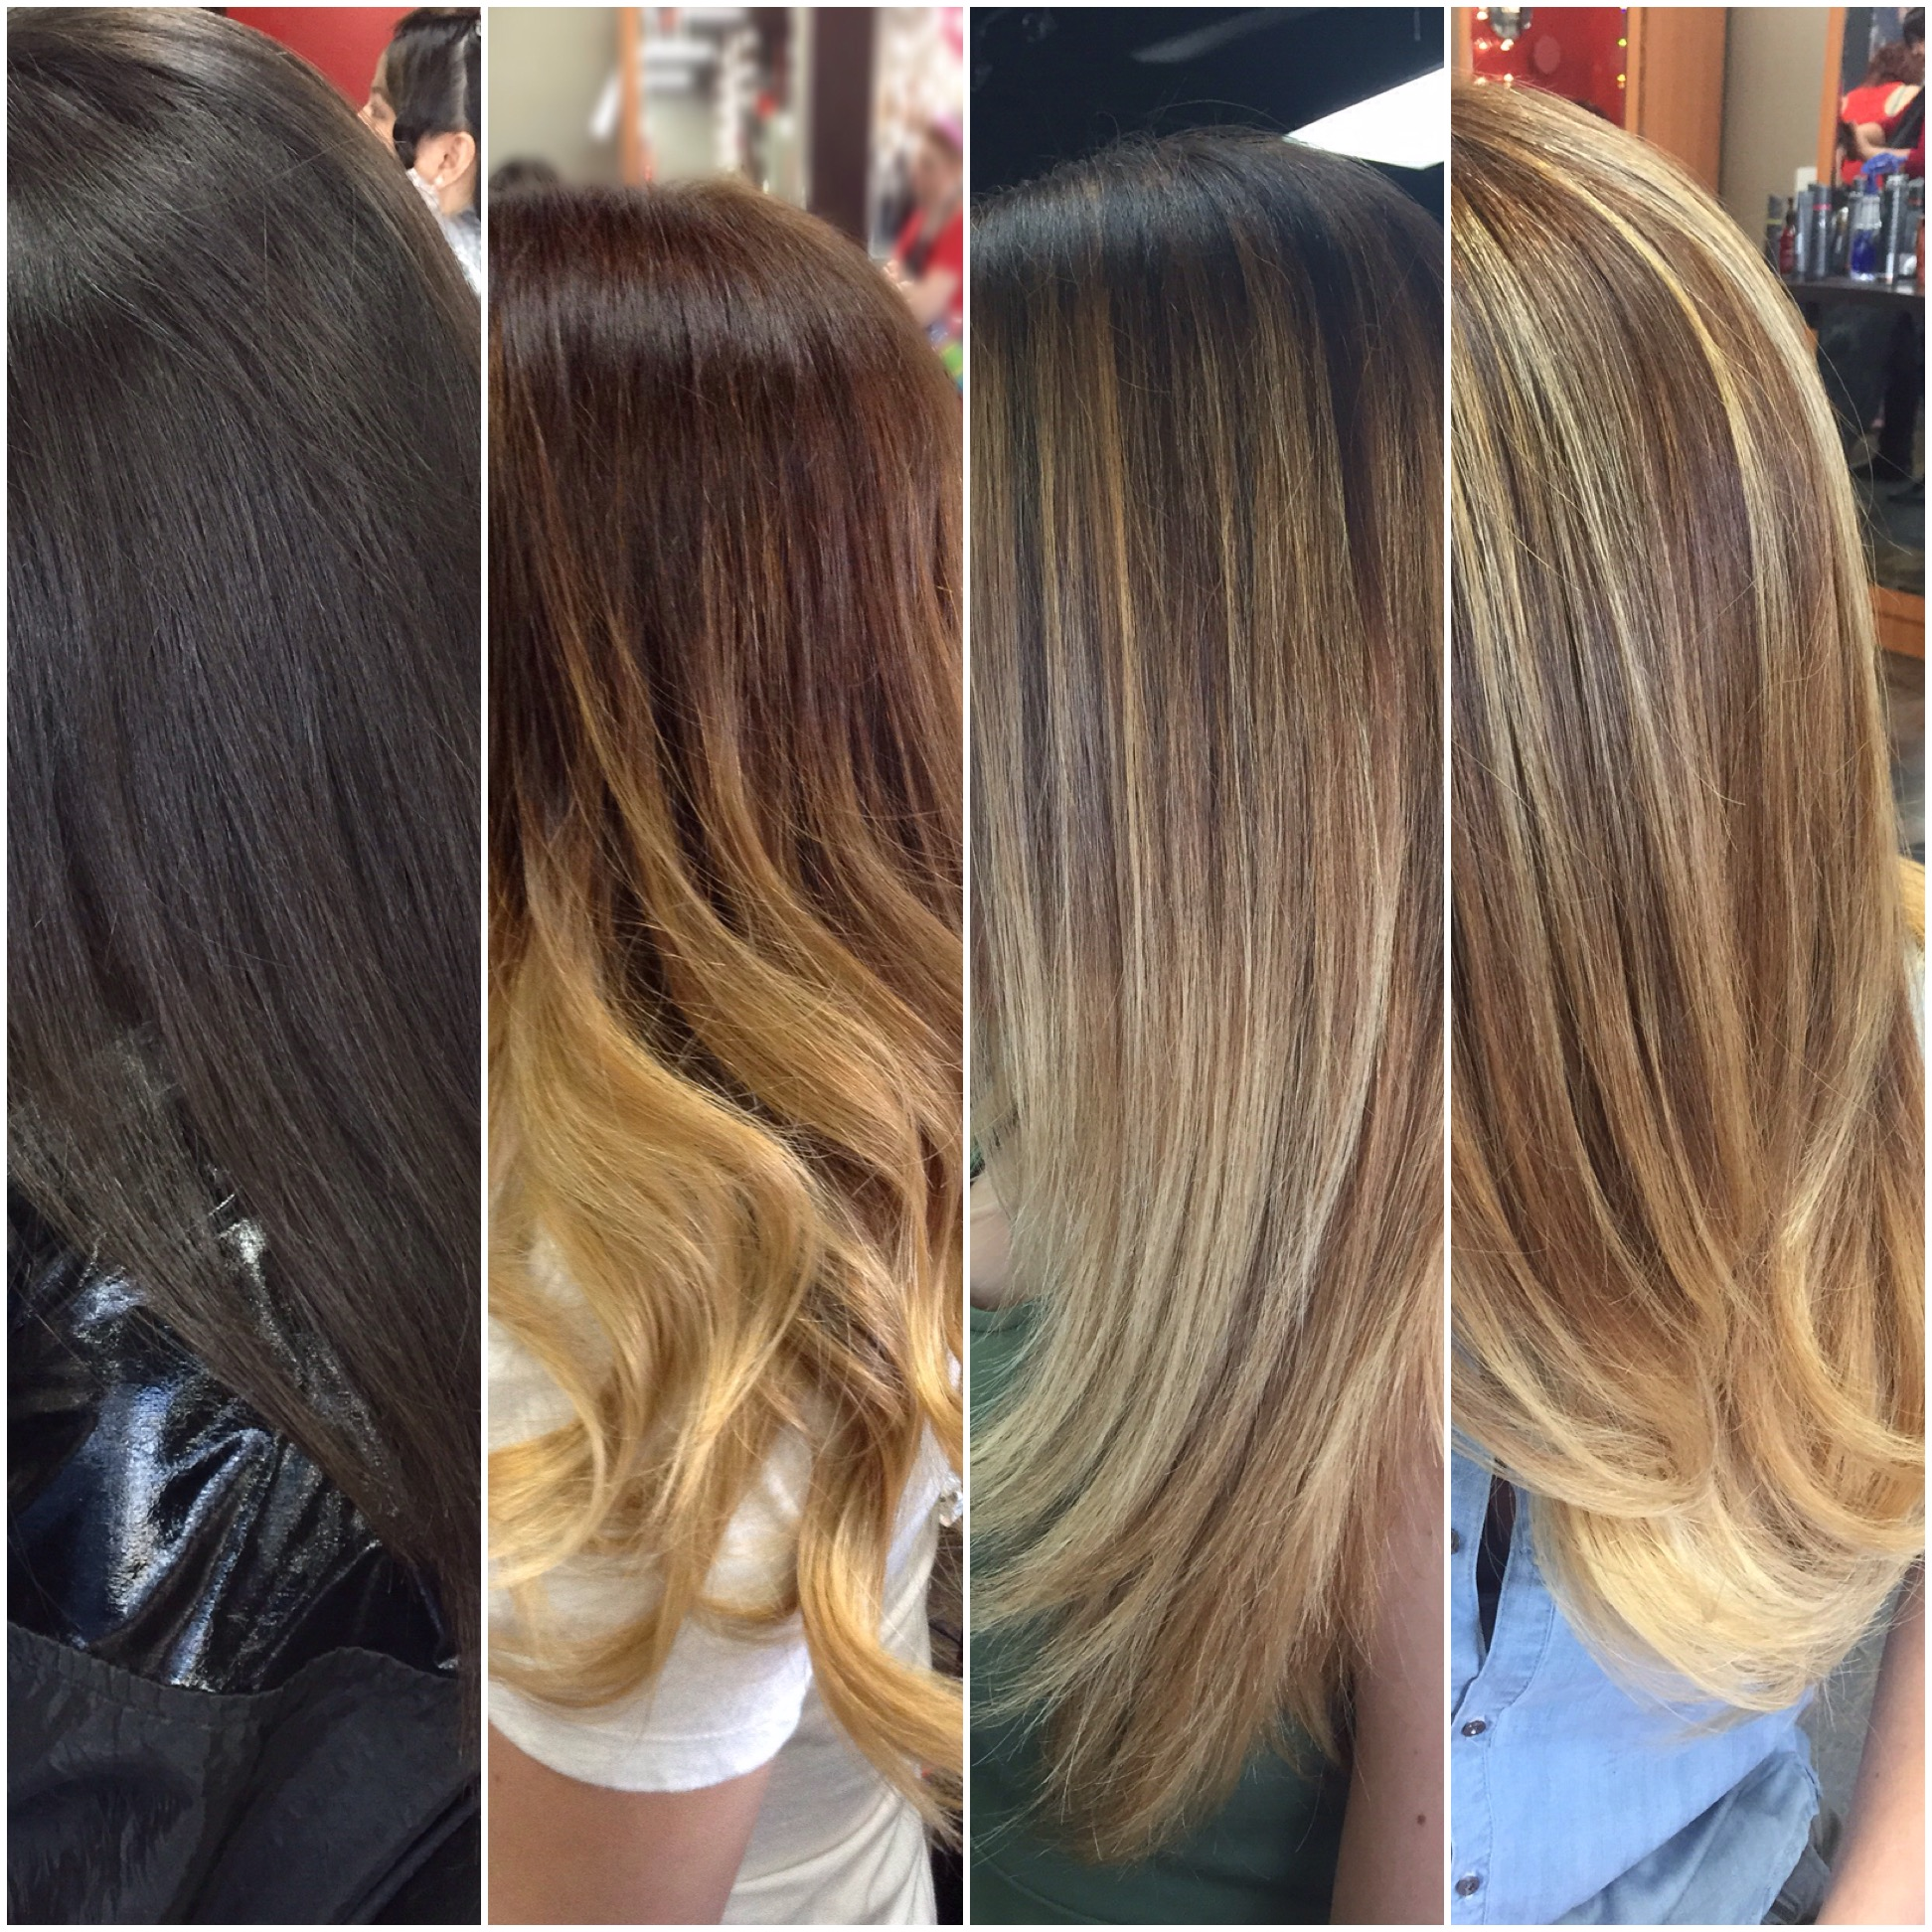 THE SESSIONS: Virgin To Blonde Balayage Ombre